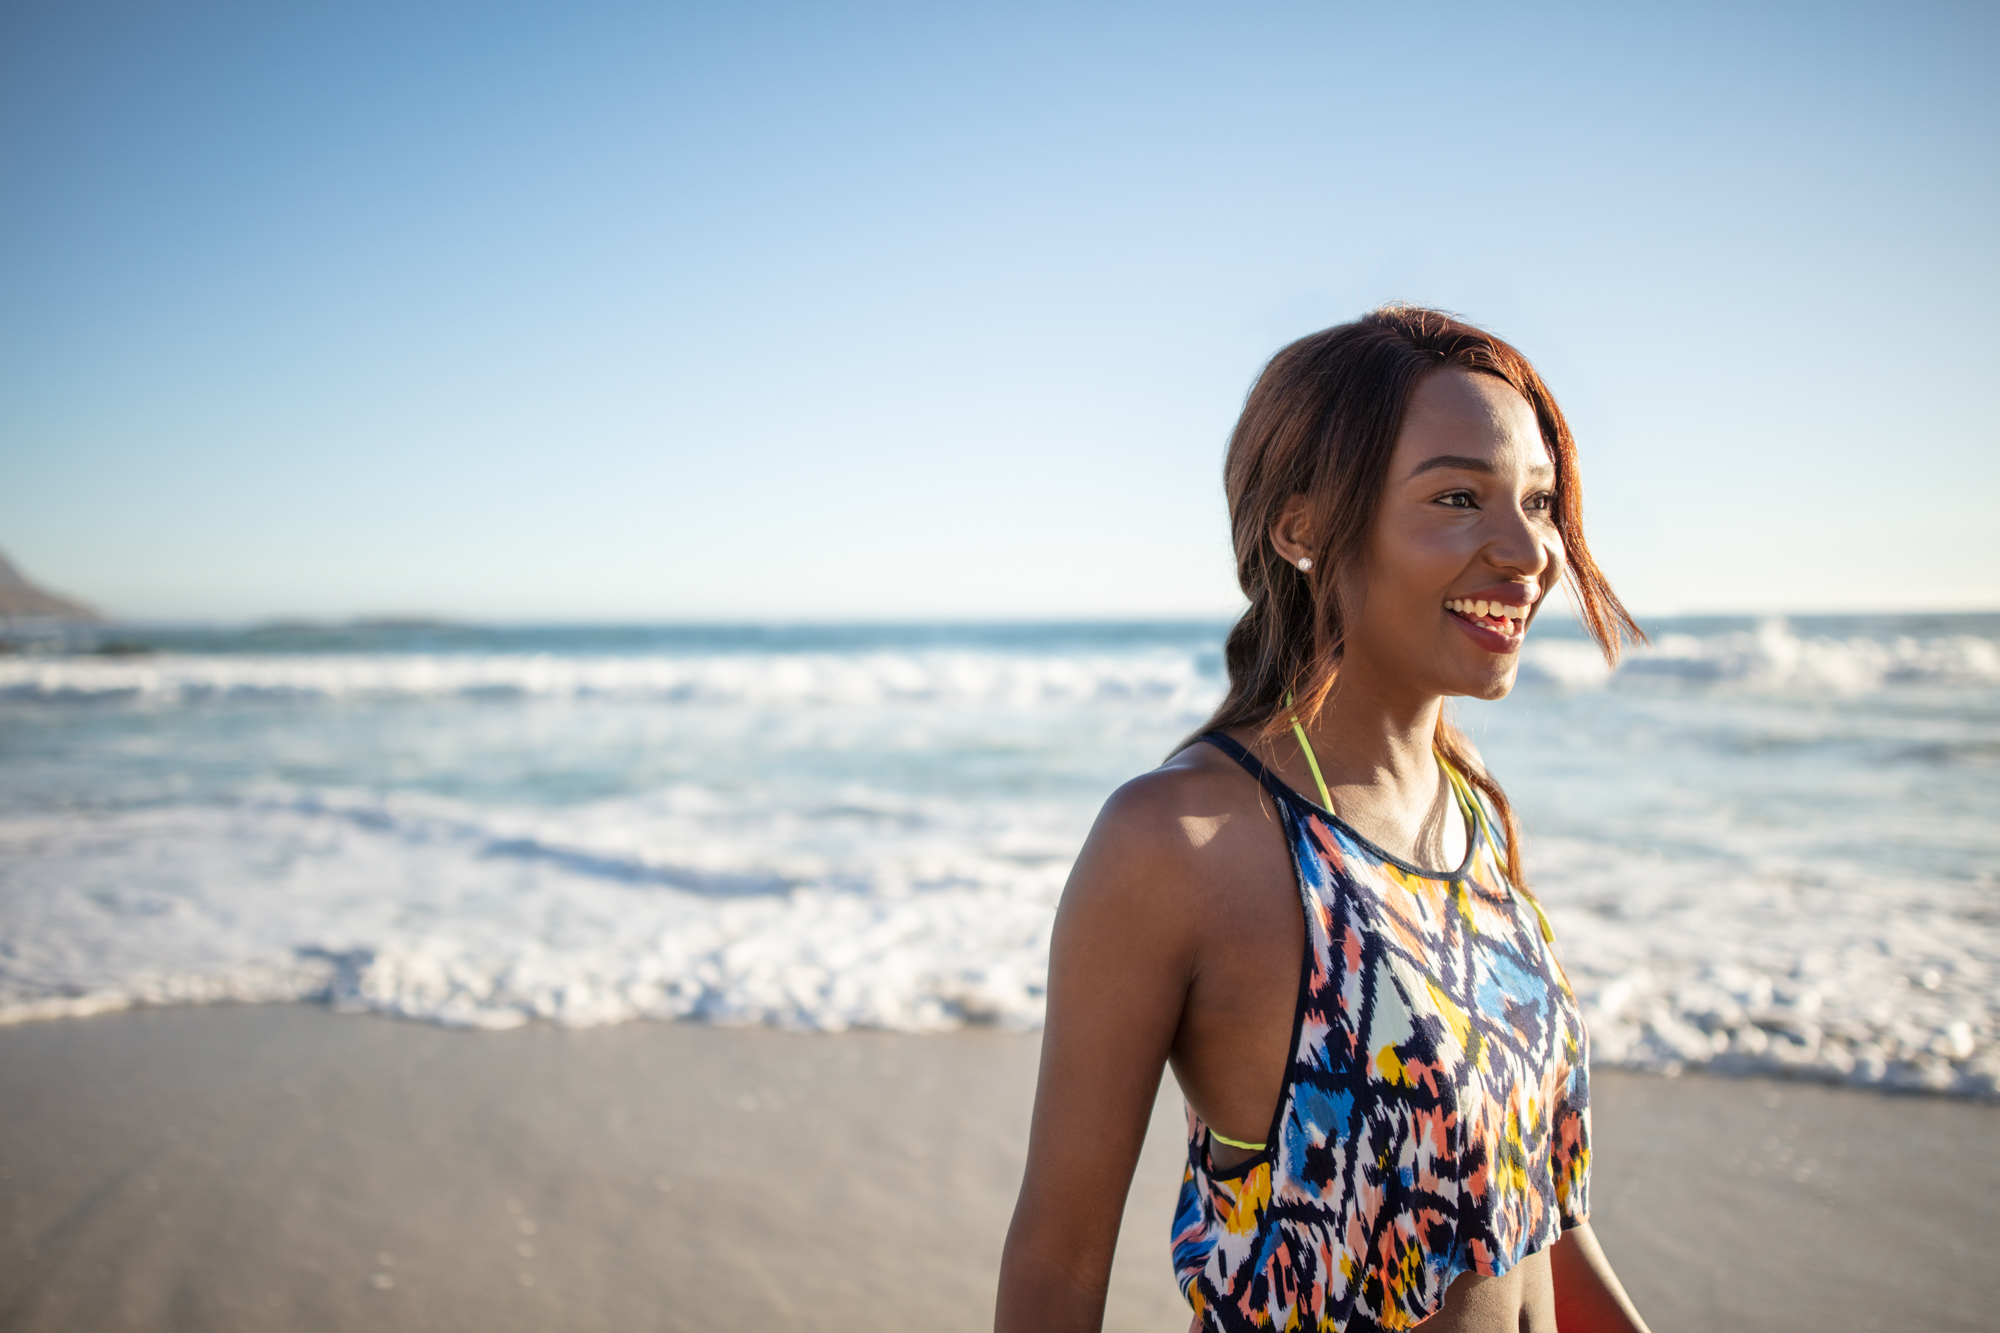 Image of girl on the beach in Cape Town for  Tsogo Sun's Image Library & Content Library by Michelle Wastie Photography